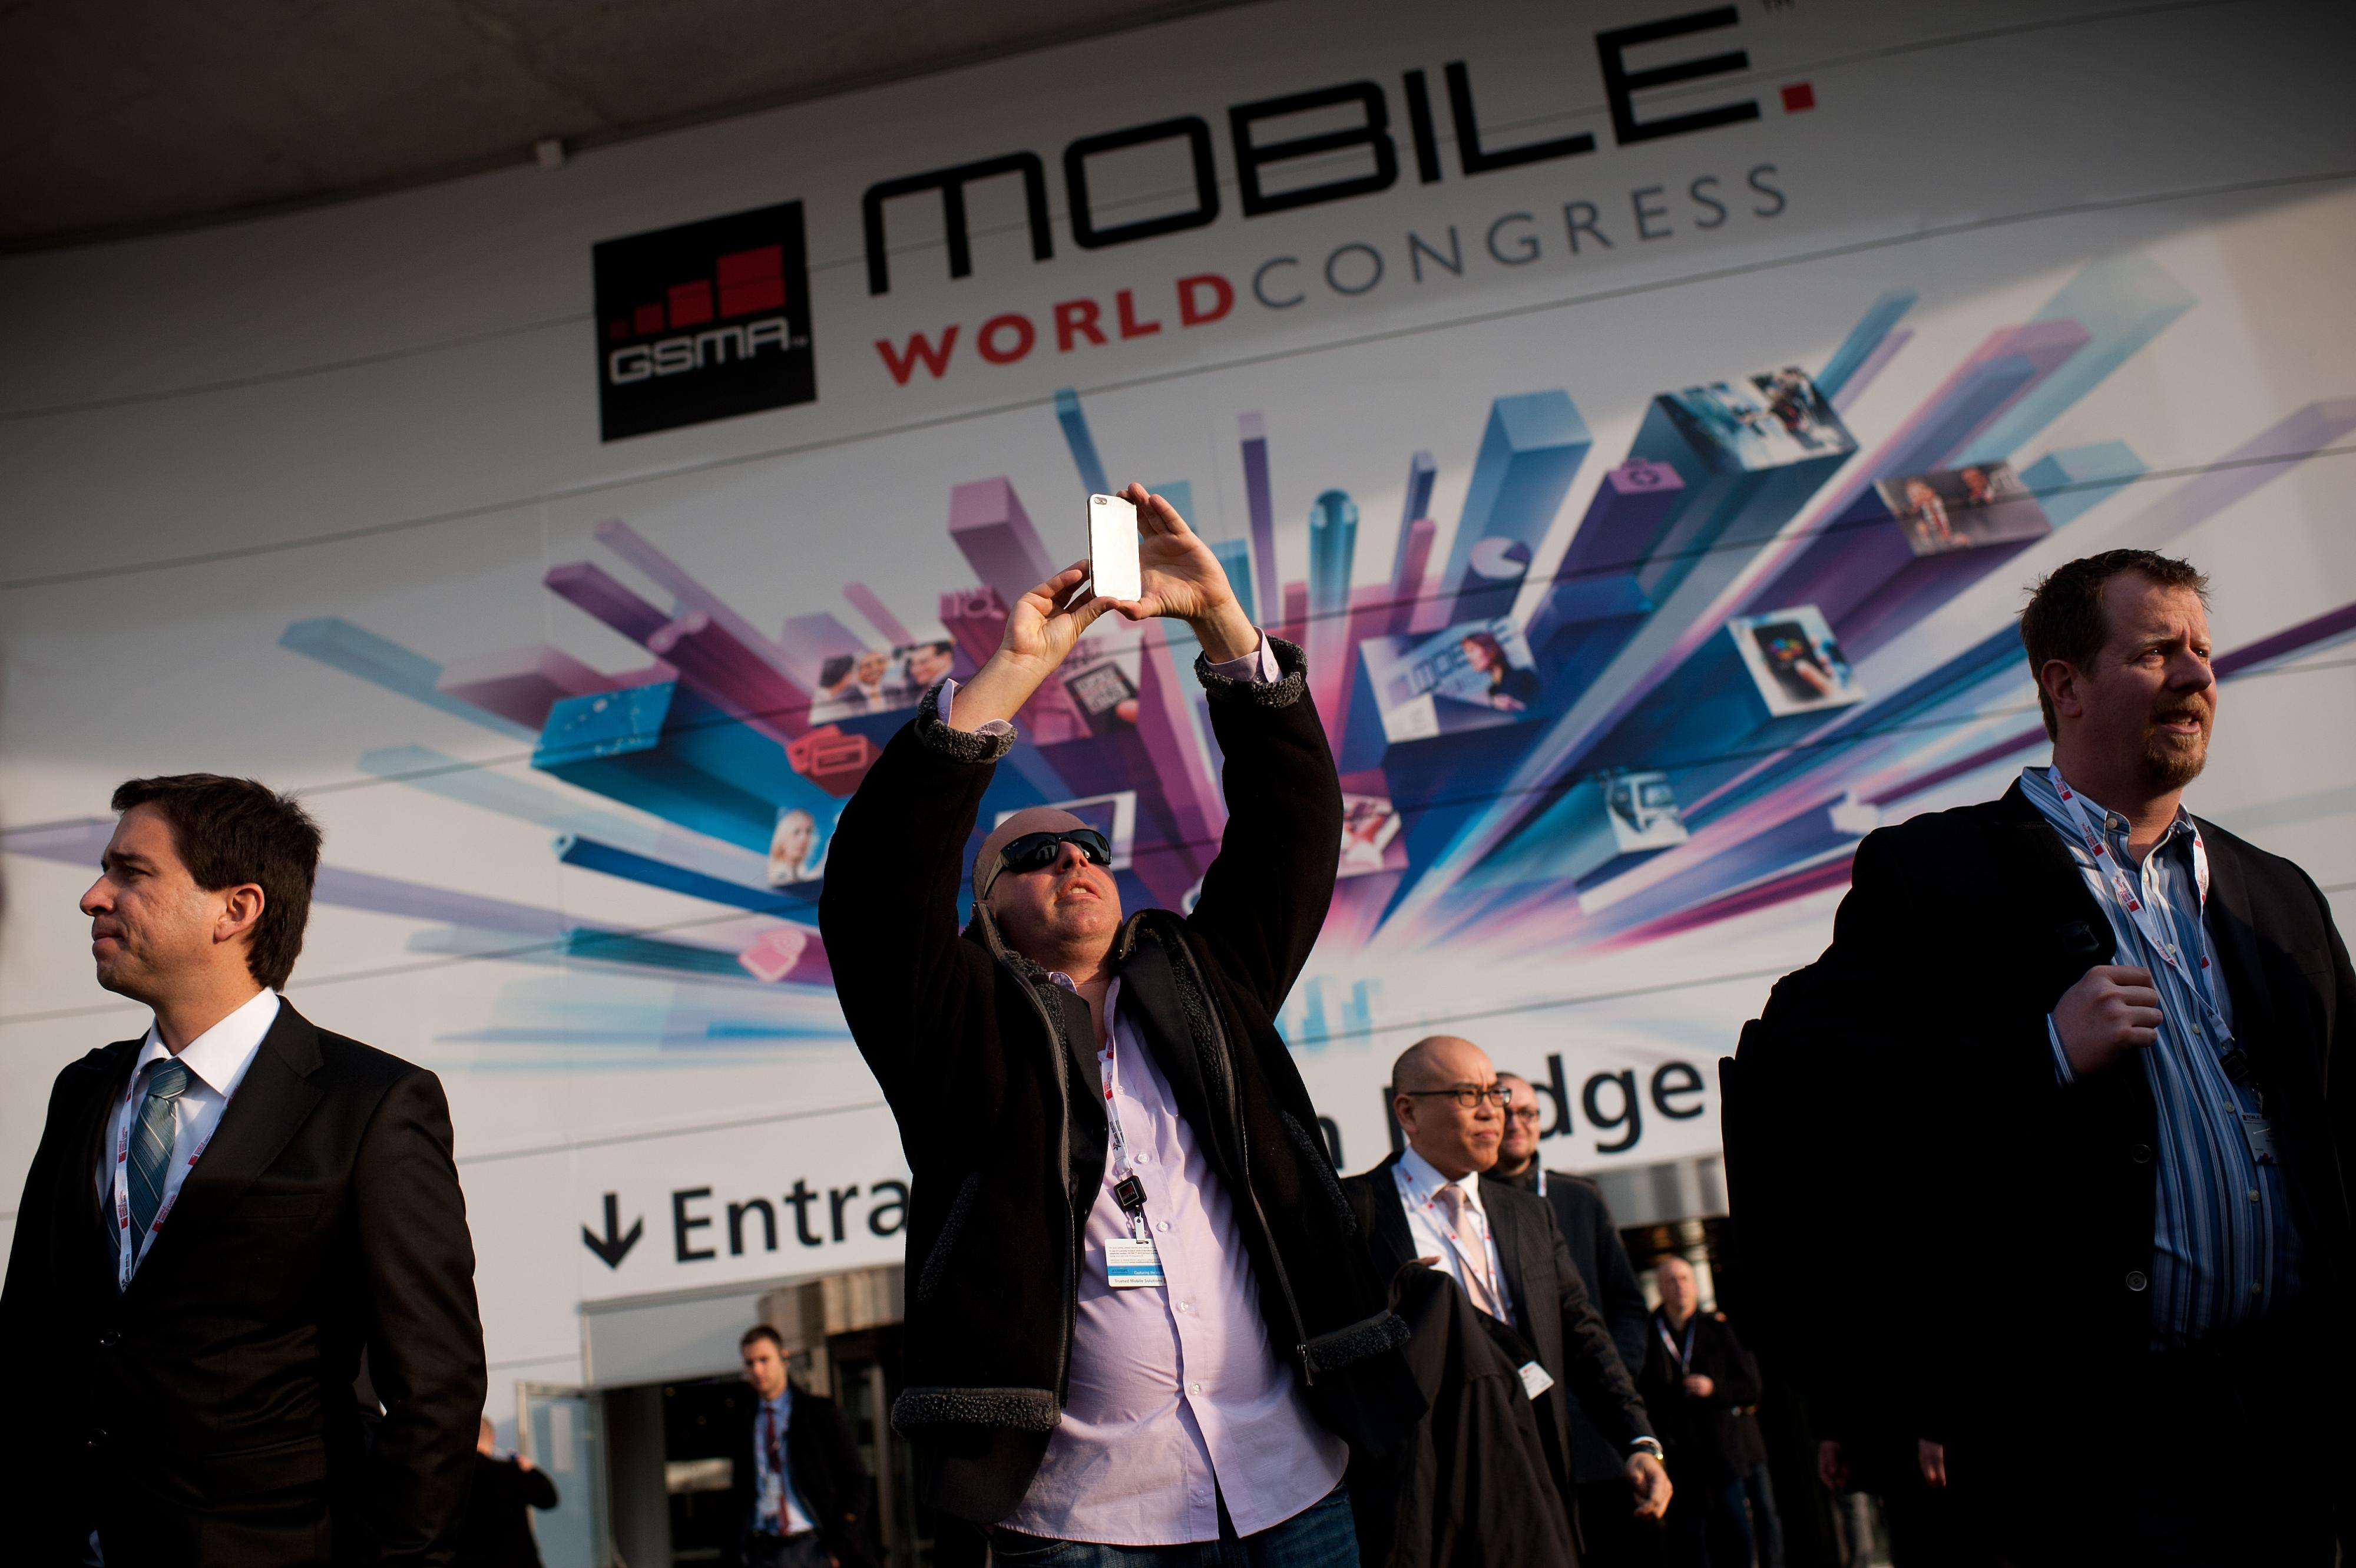 mwc2 - Một tỷ smartphone tiếp theo